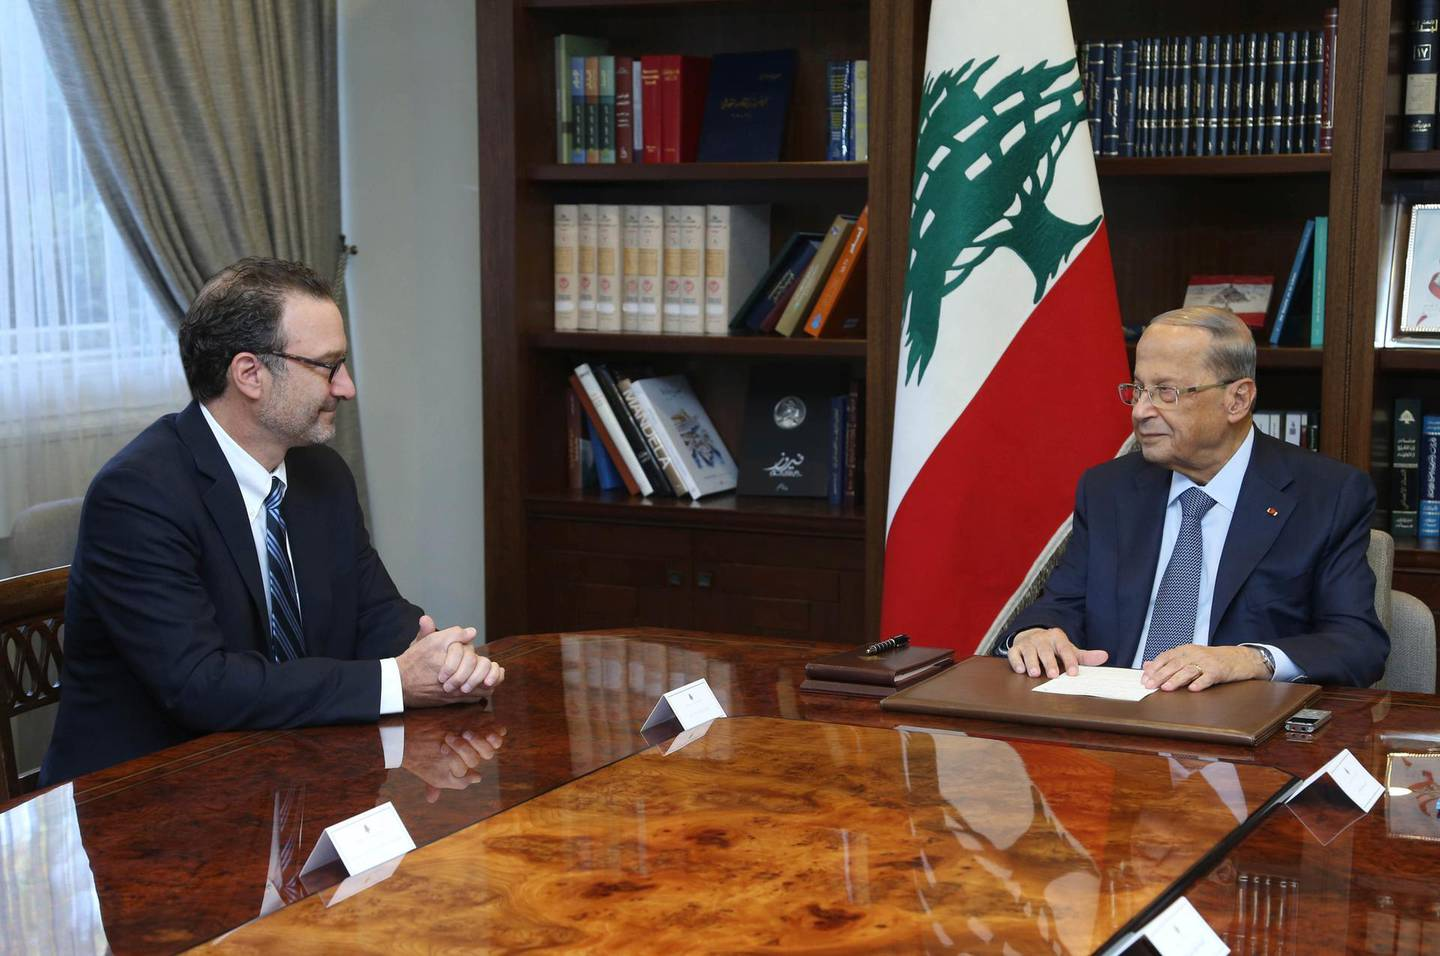 """In this photo released by Lebanon's official government photographer Dalati Nohra, Lebanese President Michel Aoun, right, meets with David Schenker, Assistant Secretary of State for Near Eastern Affairs, at the presidential palace, in Baabda east of Beirut, Lebanon, Tuesday, Sept. 10, 2019. The leader of Lebanon's militant Hezbollah group, Hassan Nasrallah, said Schenker visiting Beirut to mediate between Lebanon and Israel over a maritime border dispute is a """"friend of Israel."""" Nasrallah urged Lebanese officials to negotiate from a point of strength. (Dalati Nohra via AP)"""